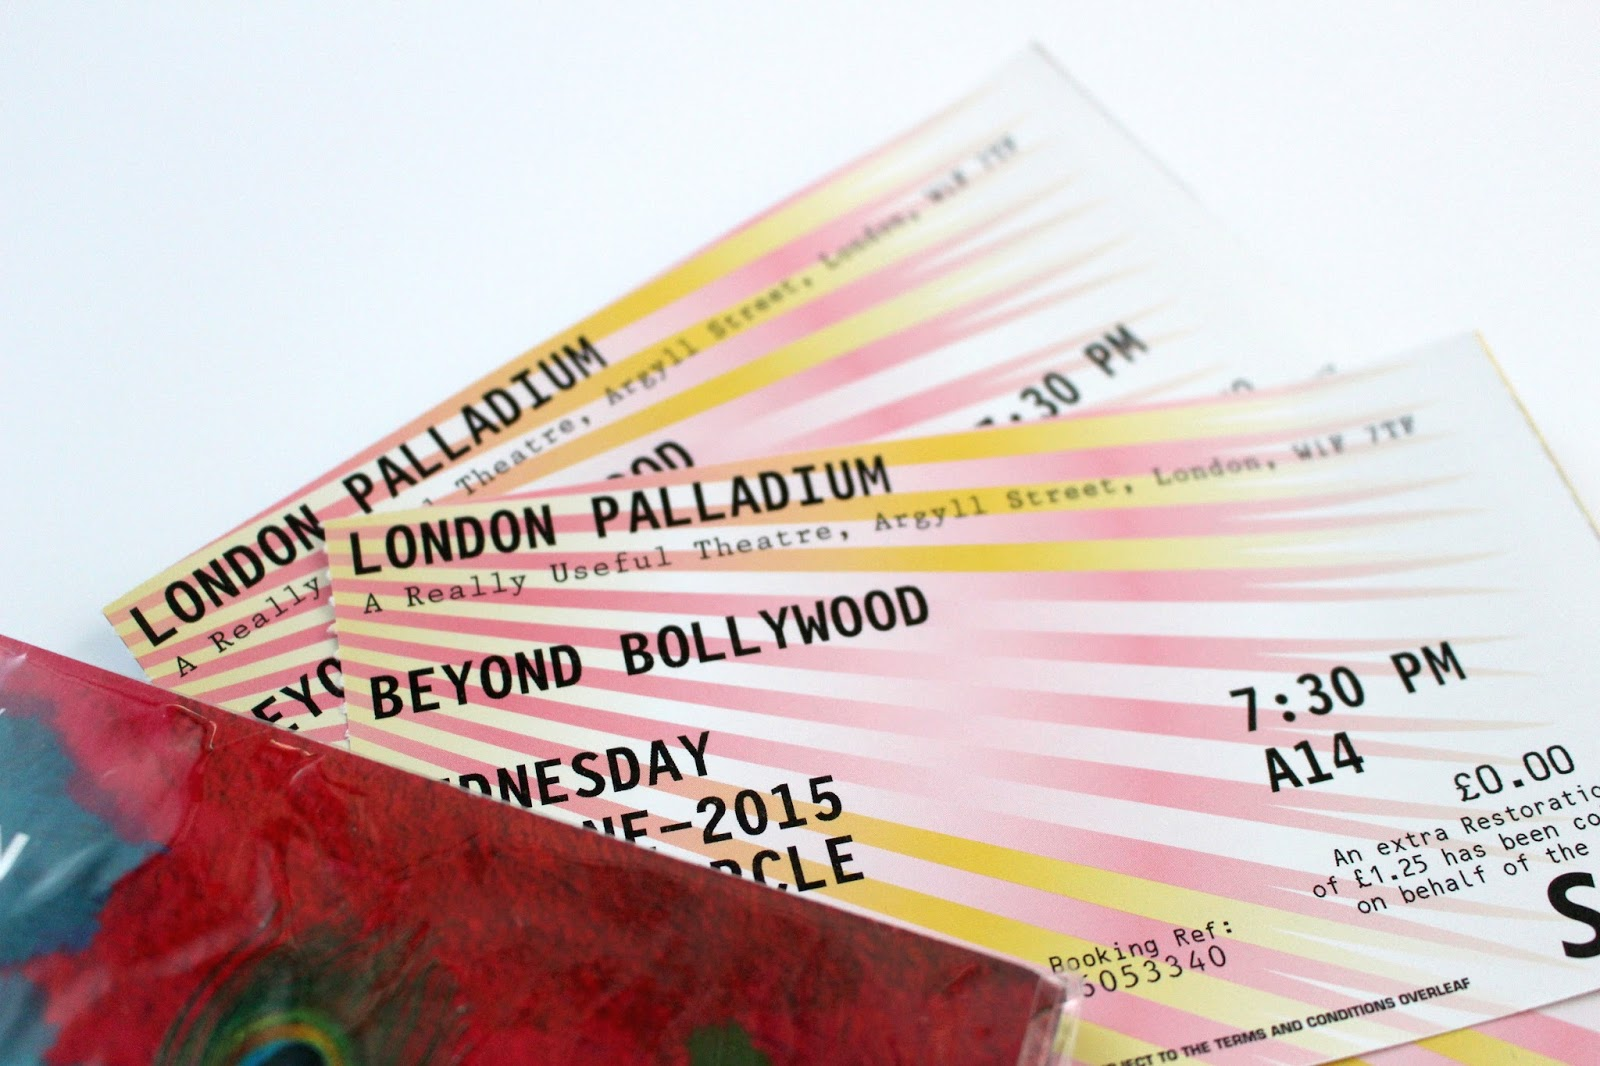 Beyond Bollywood London Palladium